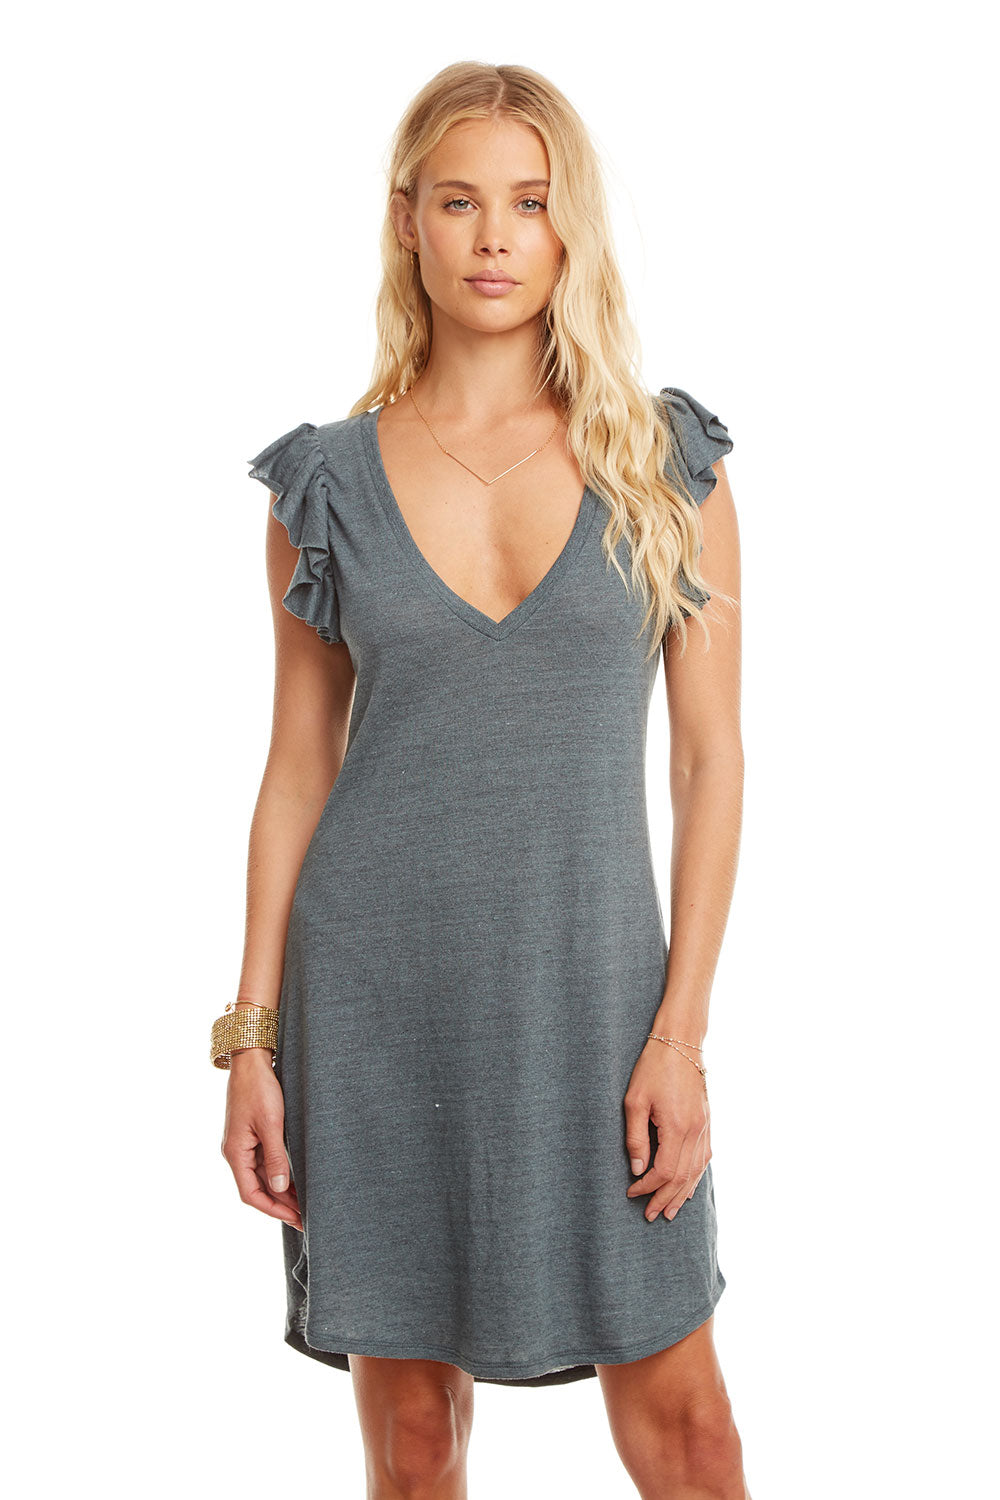 Triblend Flutter Sleeve Hi-Lo V Neck Shirttail Dress, WOMENS, chaserbrand.com,chaser clothing,chaser apparel,chaser los angeles